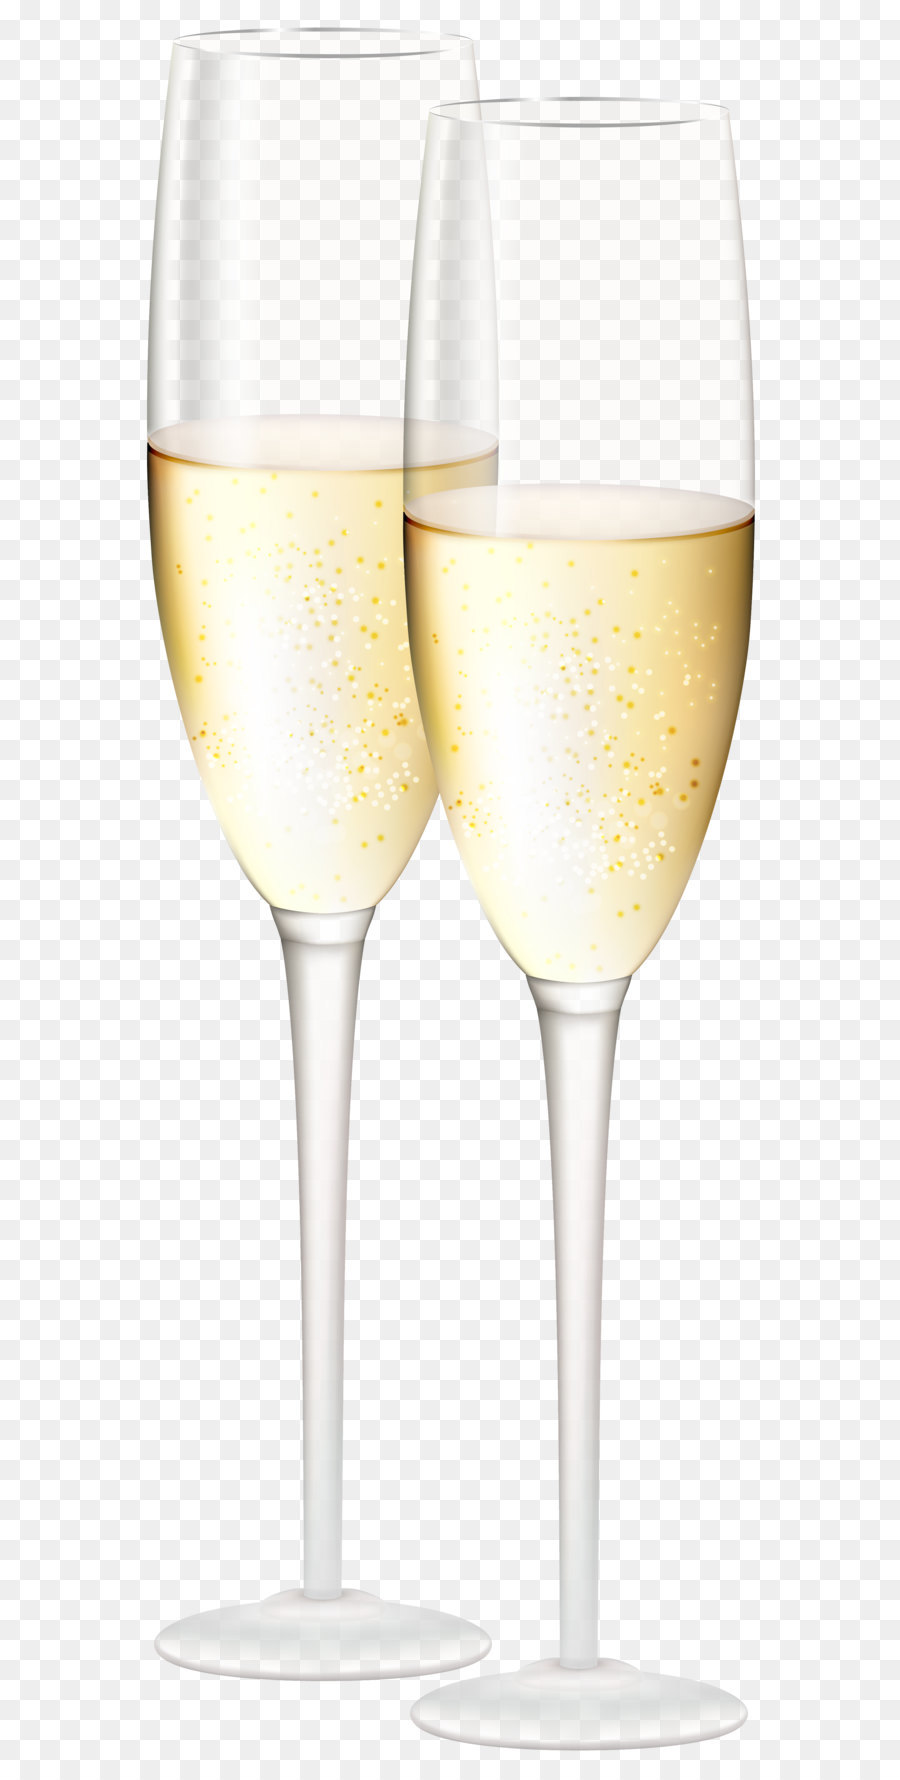 Free glass transparent background. Champaign clipart champagne cocktail